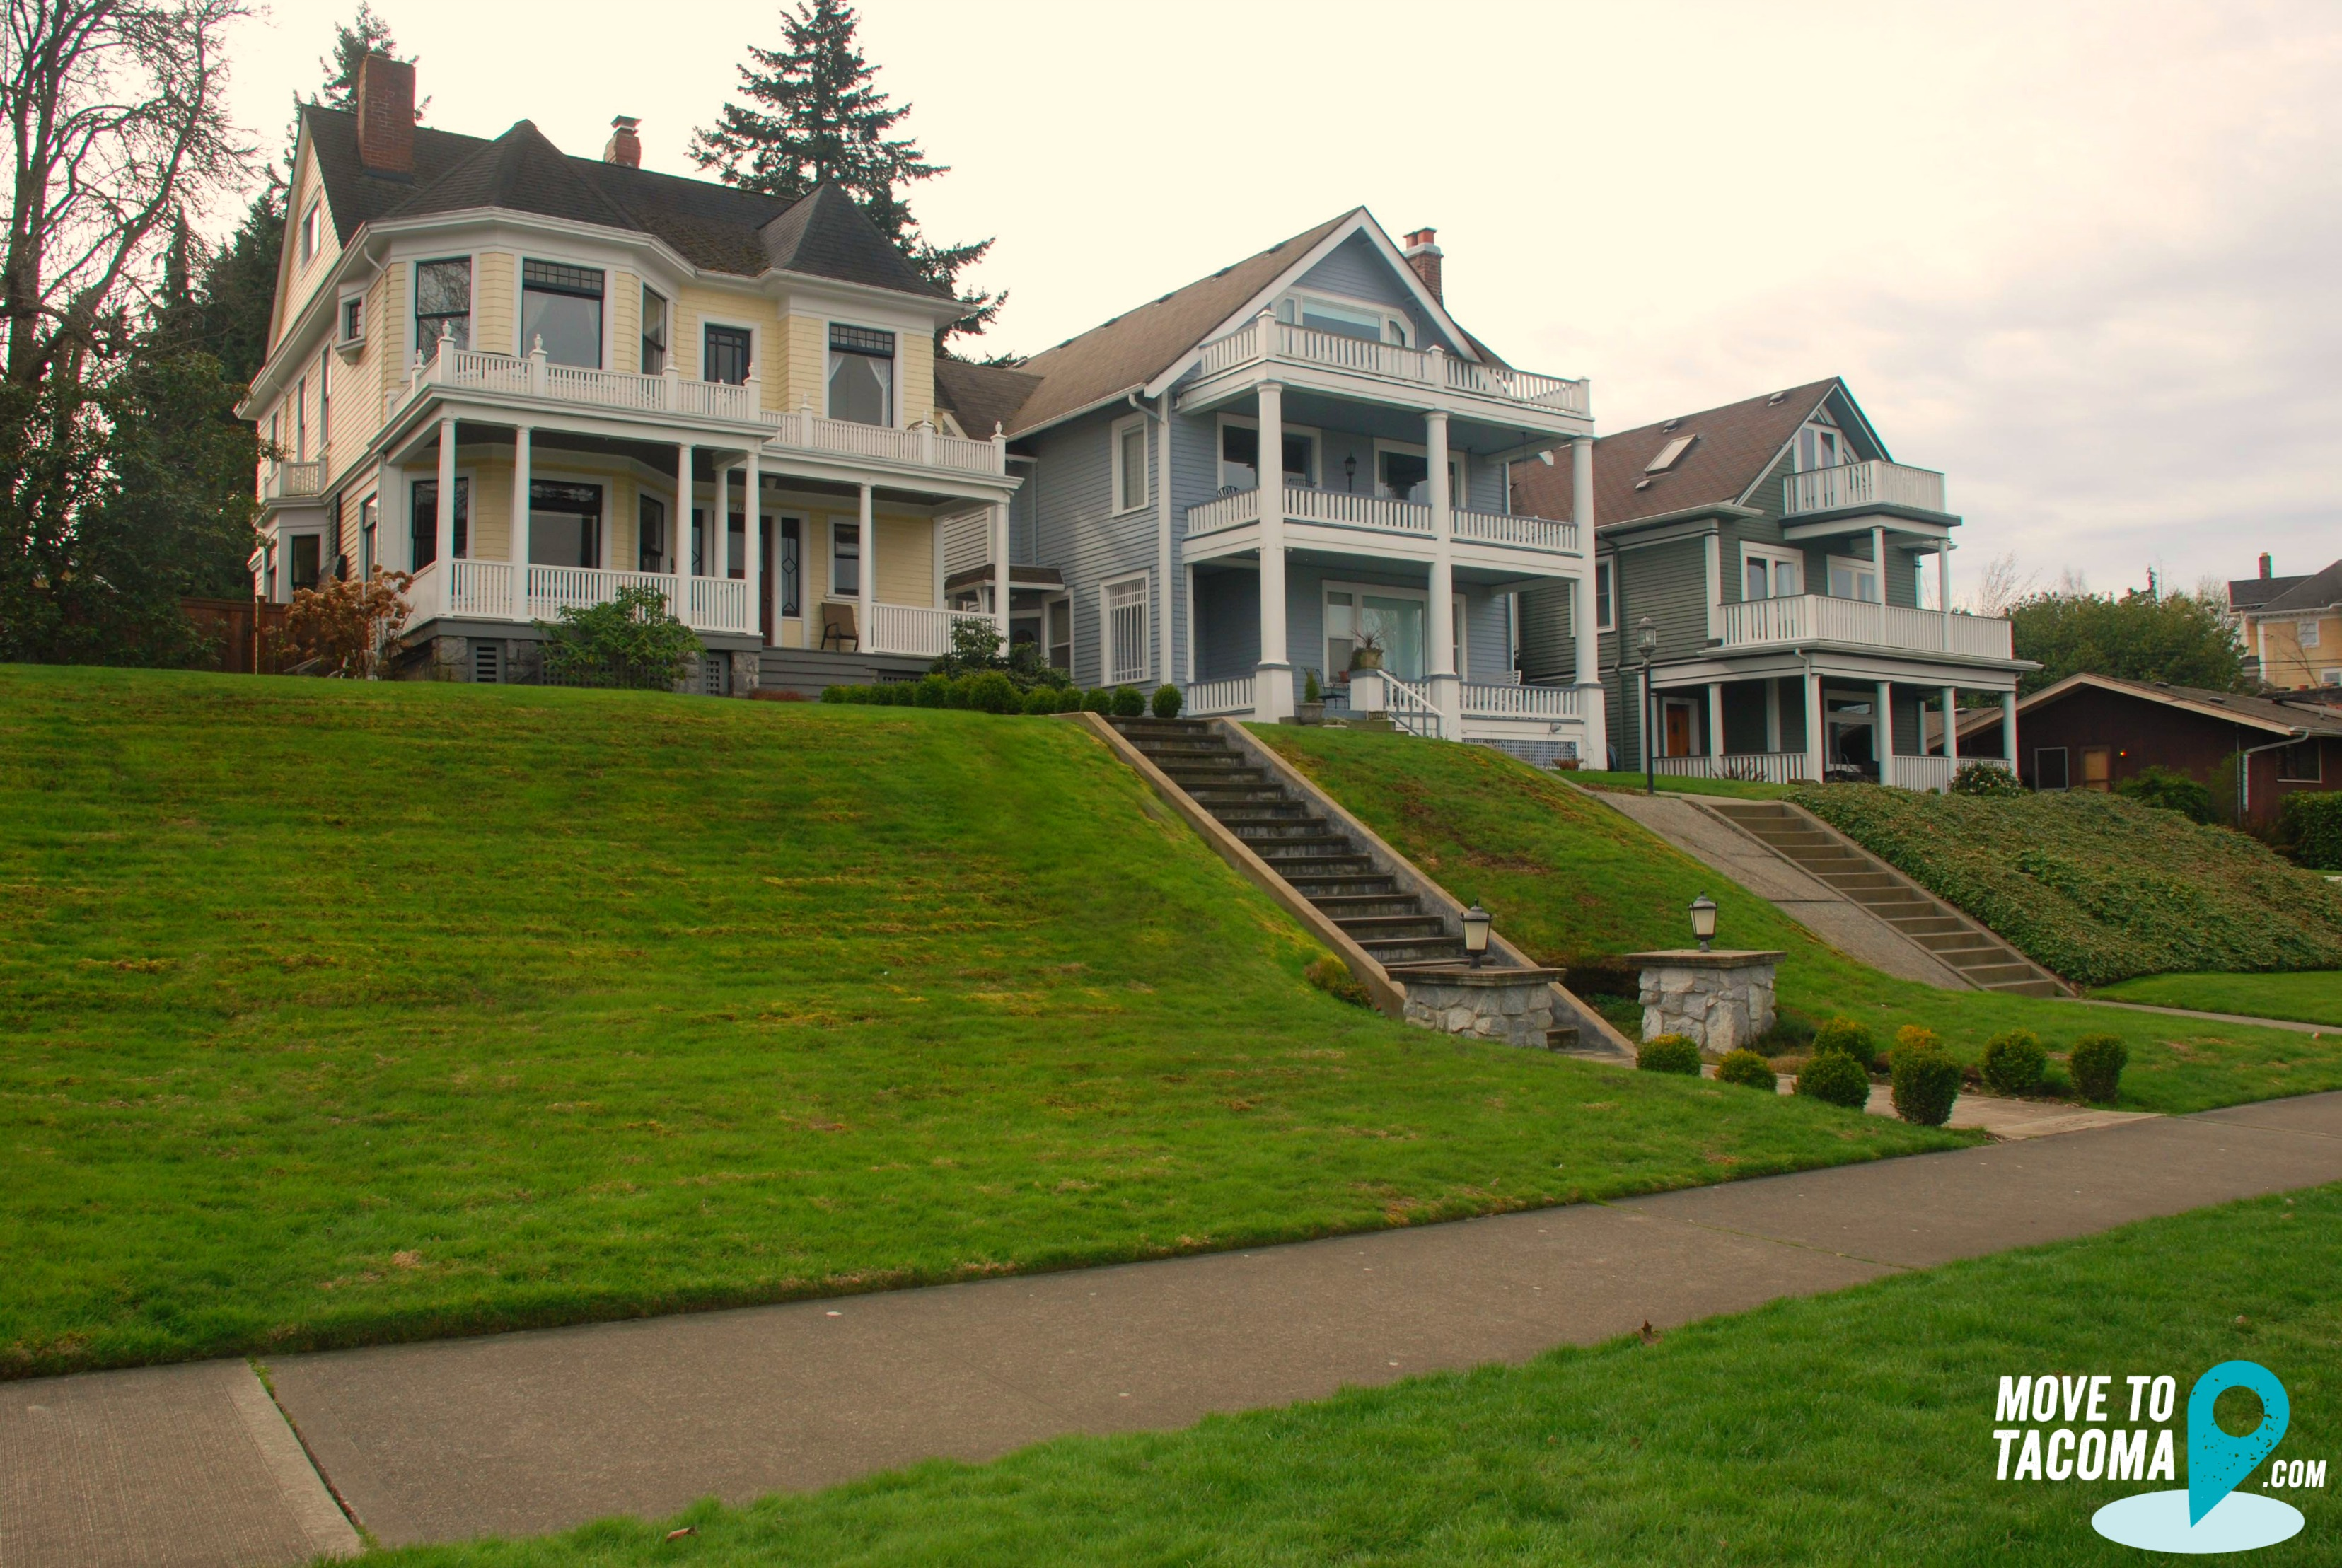 HIstoric Homes in North Tacoma WA.